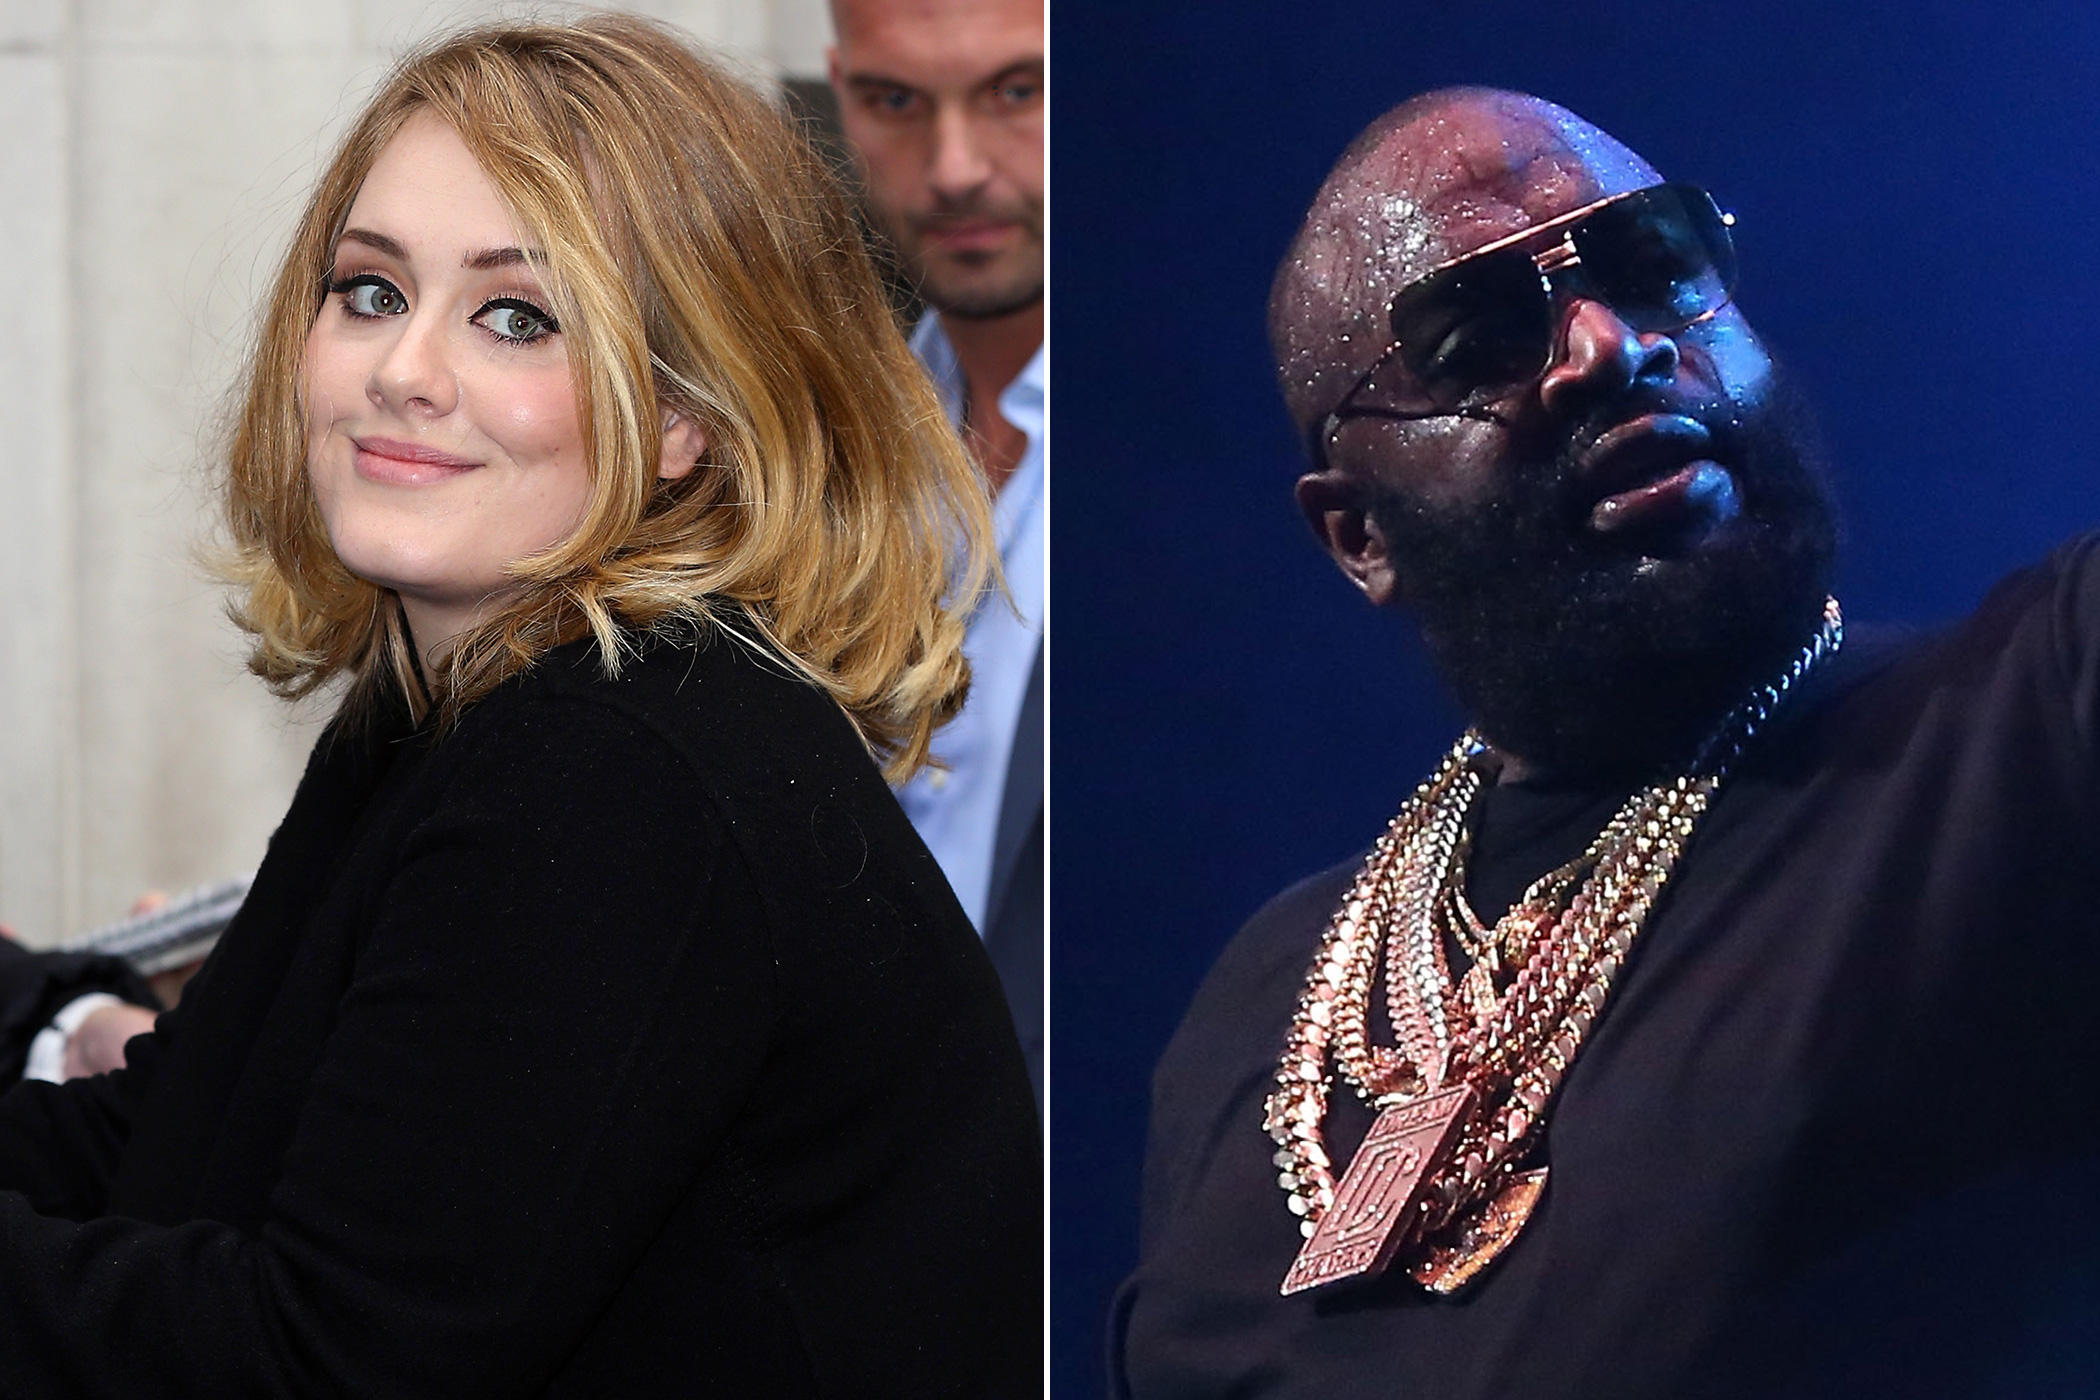 Left: Adele on Oct. 23, 2015 in London; Right:  Rick Ross on Oct. 22, 2015 in New York City.